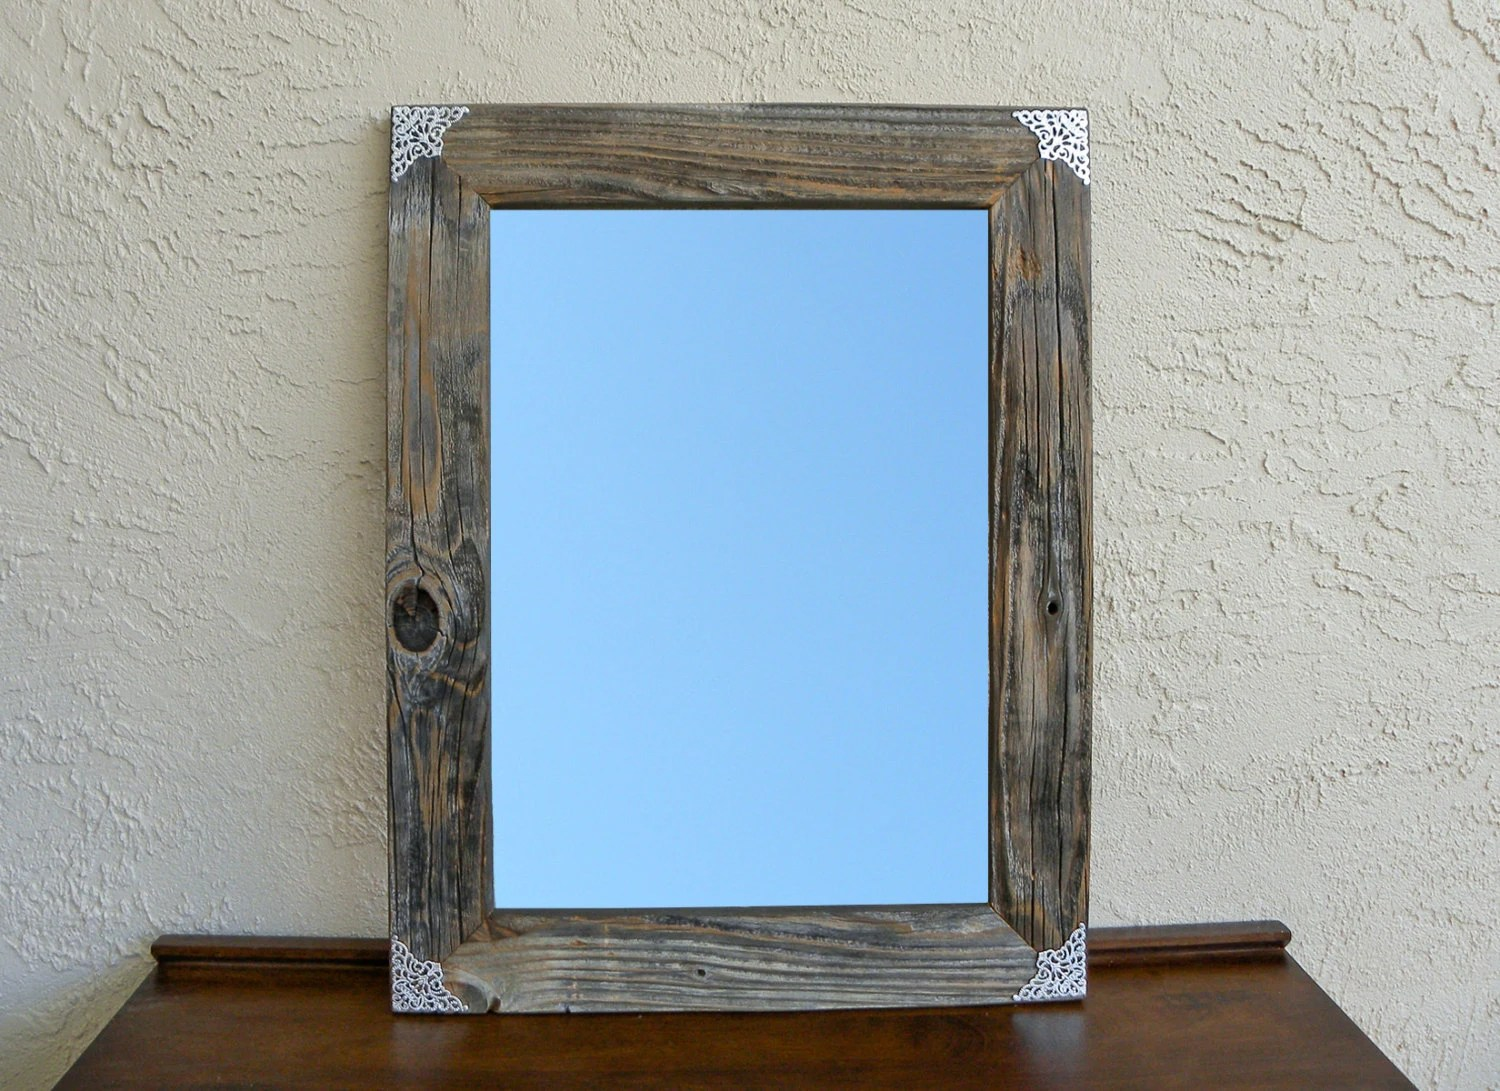 Reclaimed Wood Mirror With Silver Filigree Corners. Rustic